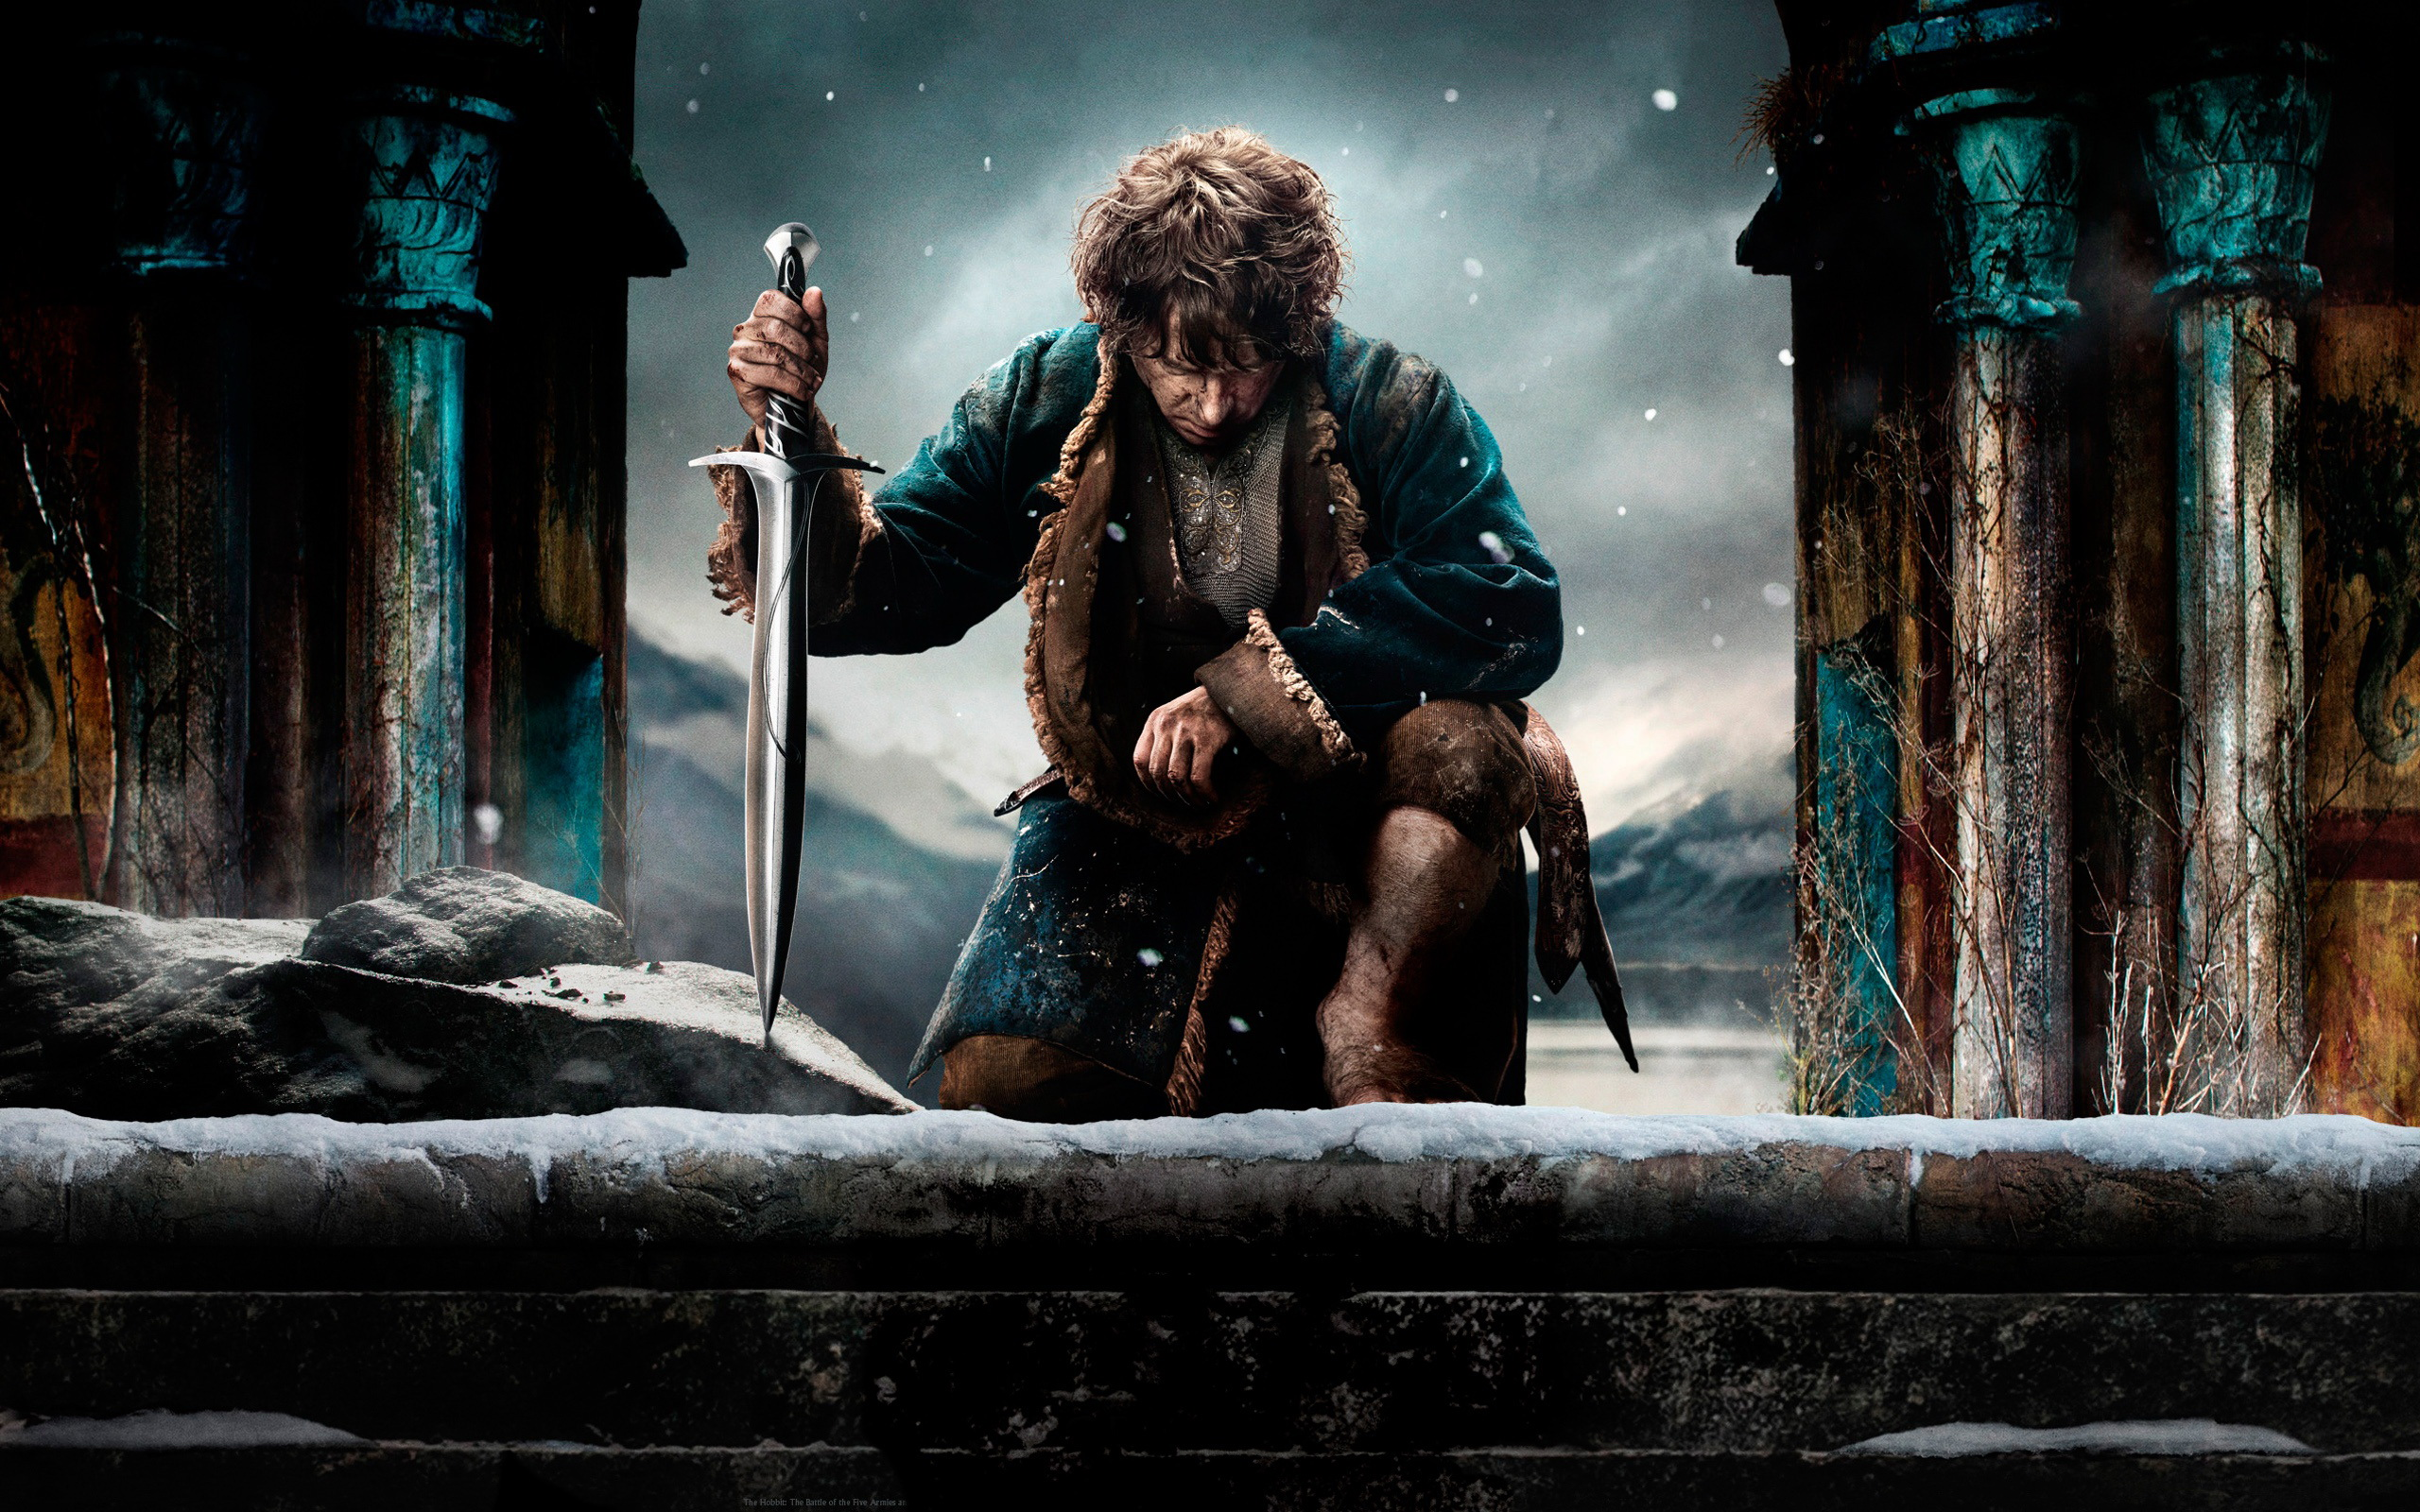 The Hobbit Wallpapers HD XIKL8QH   4USkY 2560x1600